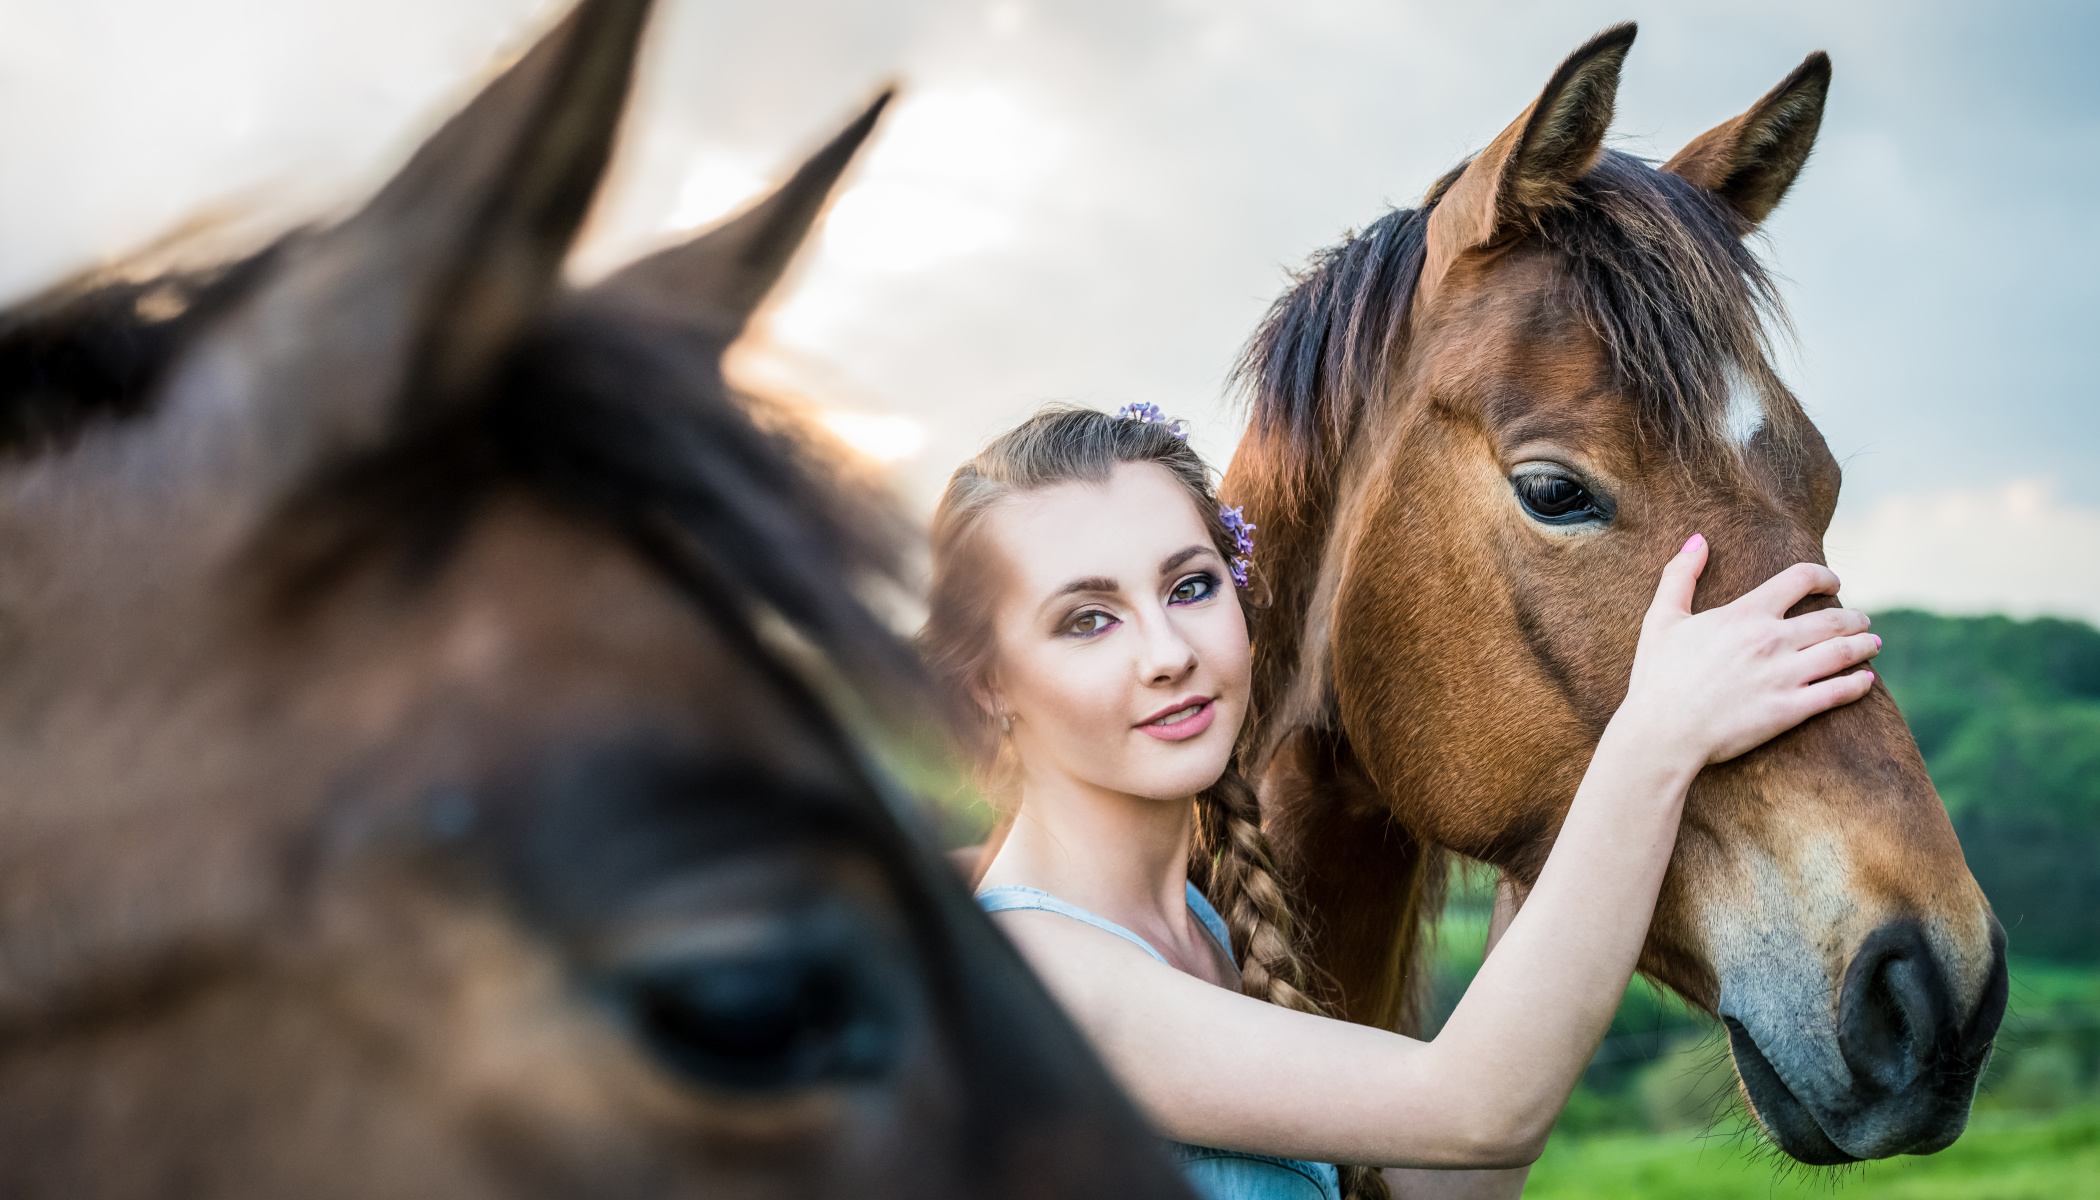 How to Take Portraits with Horses